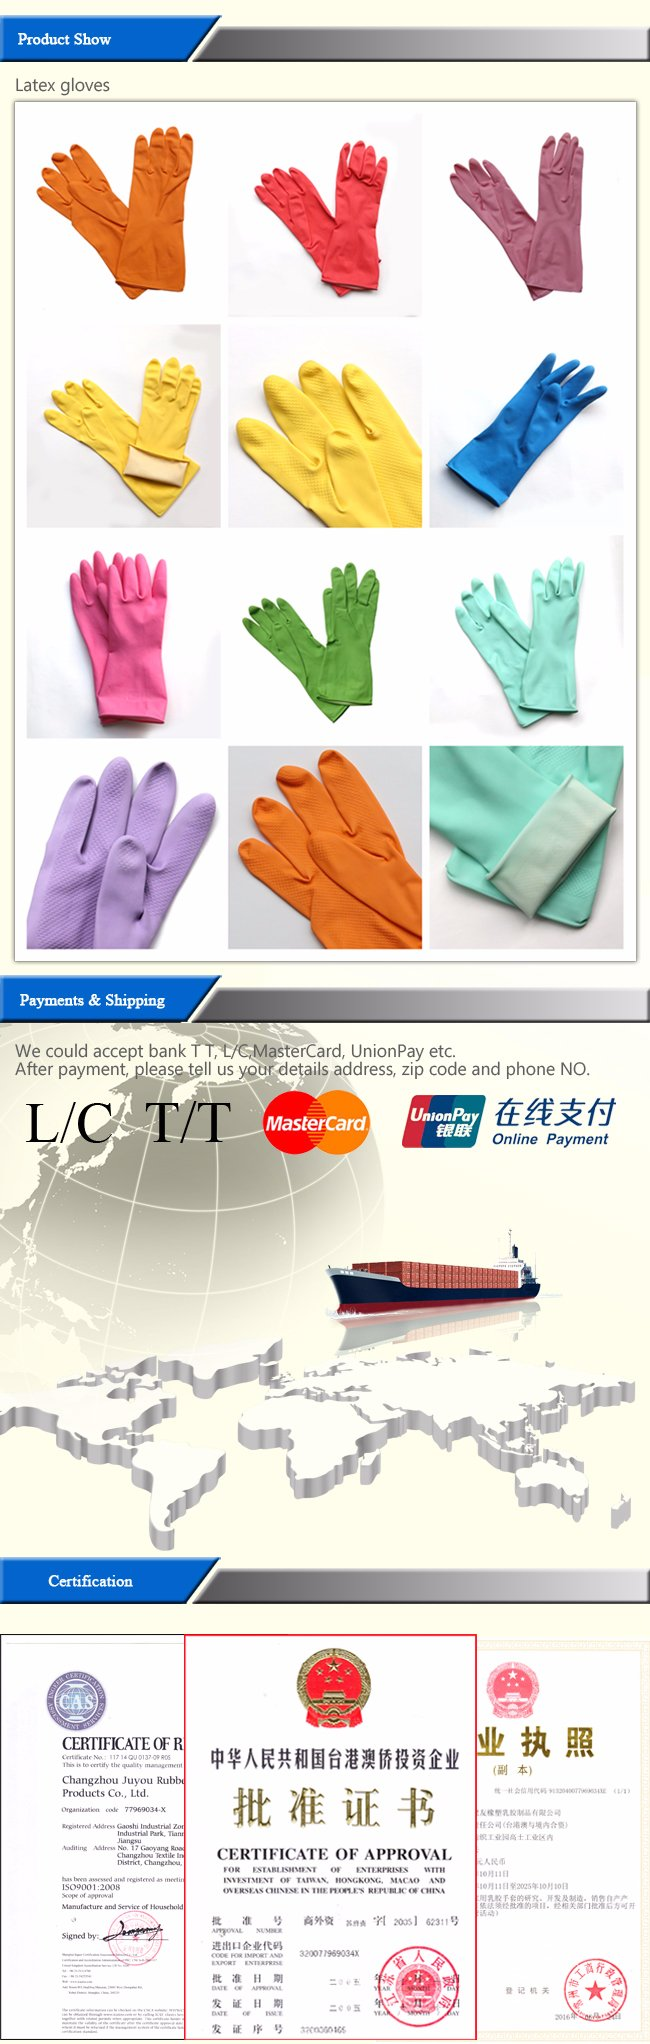 Latex Waterproof Working Gloves for Washing Stuff with ISO9001 Approved